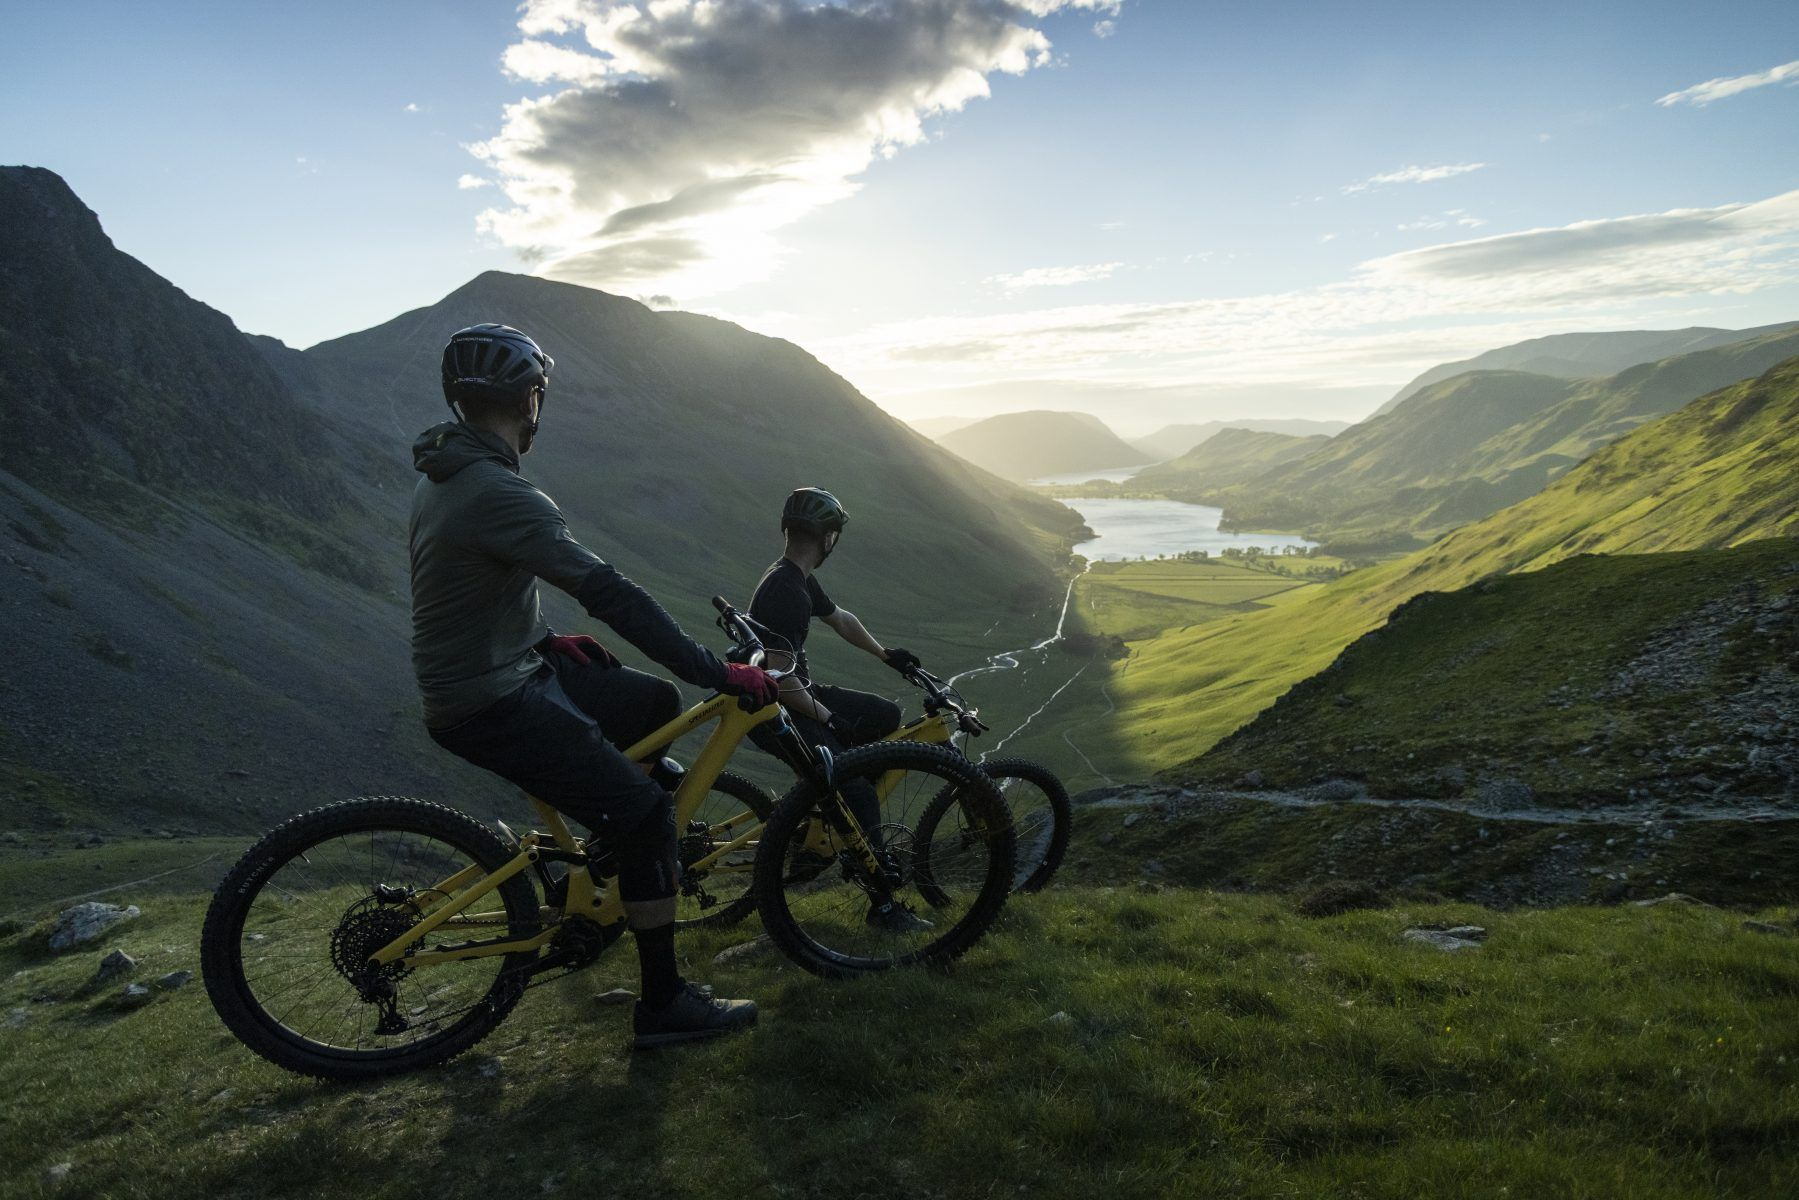 Specialized in the Lake district